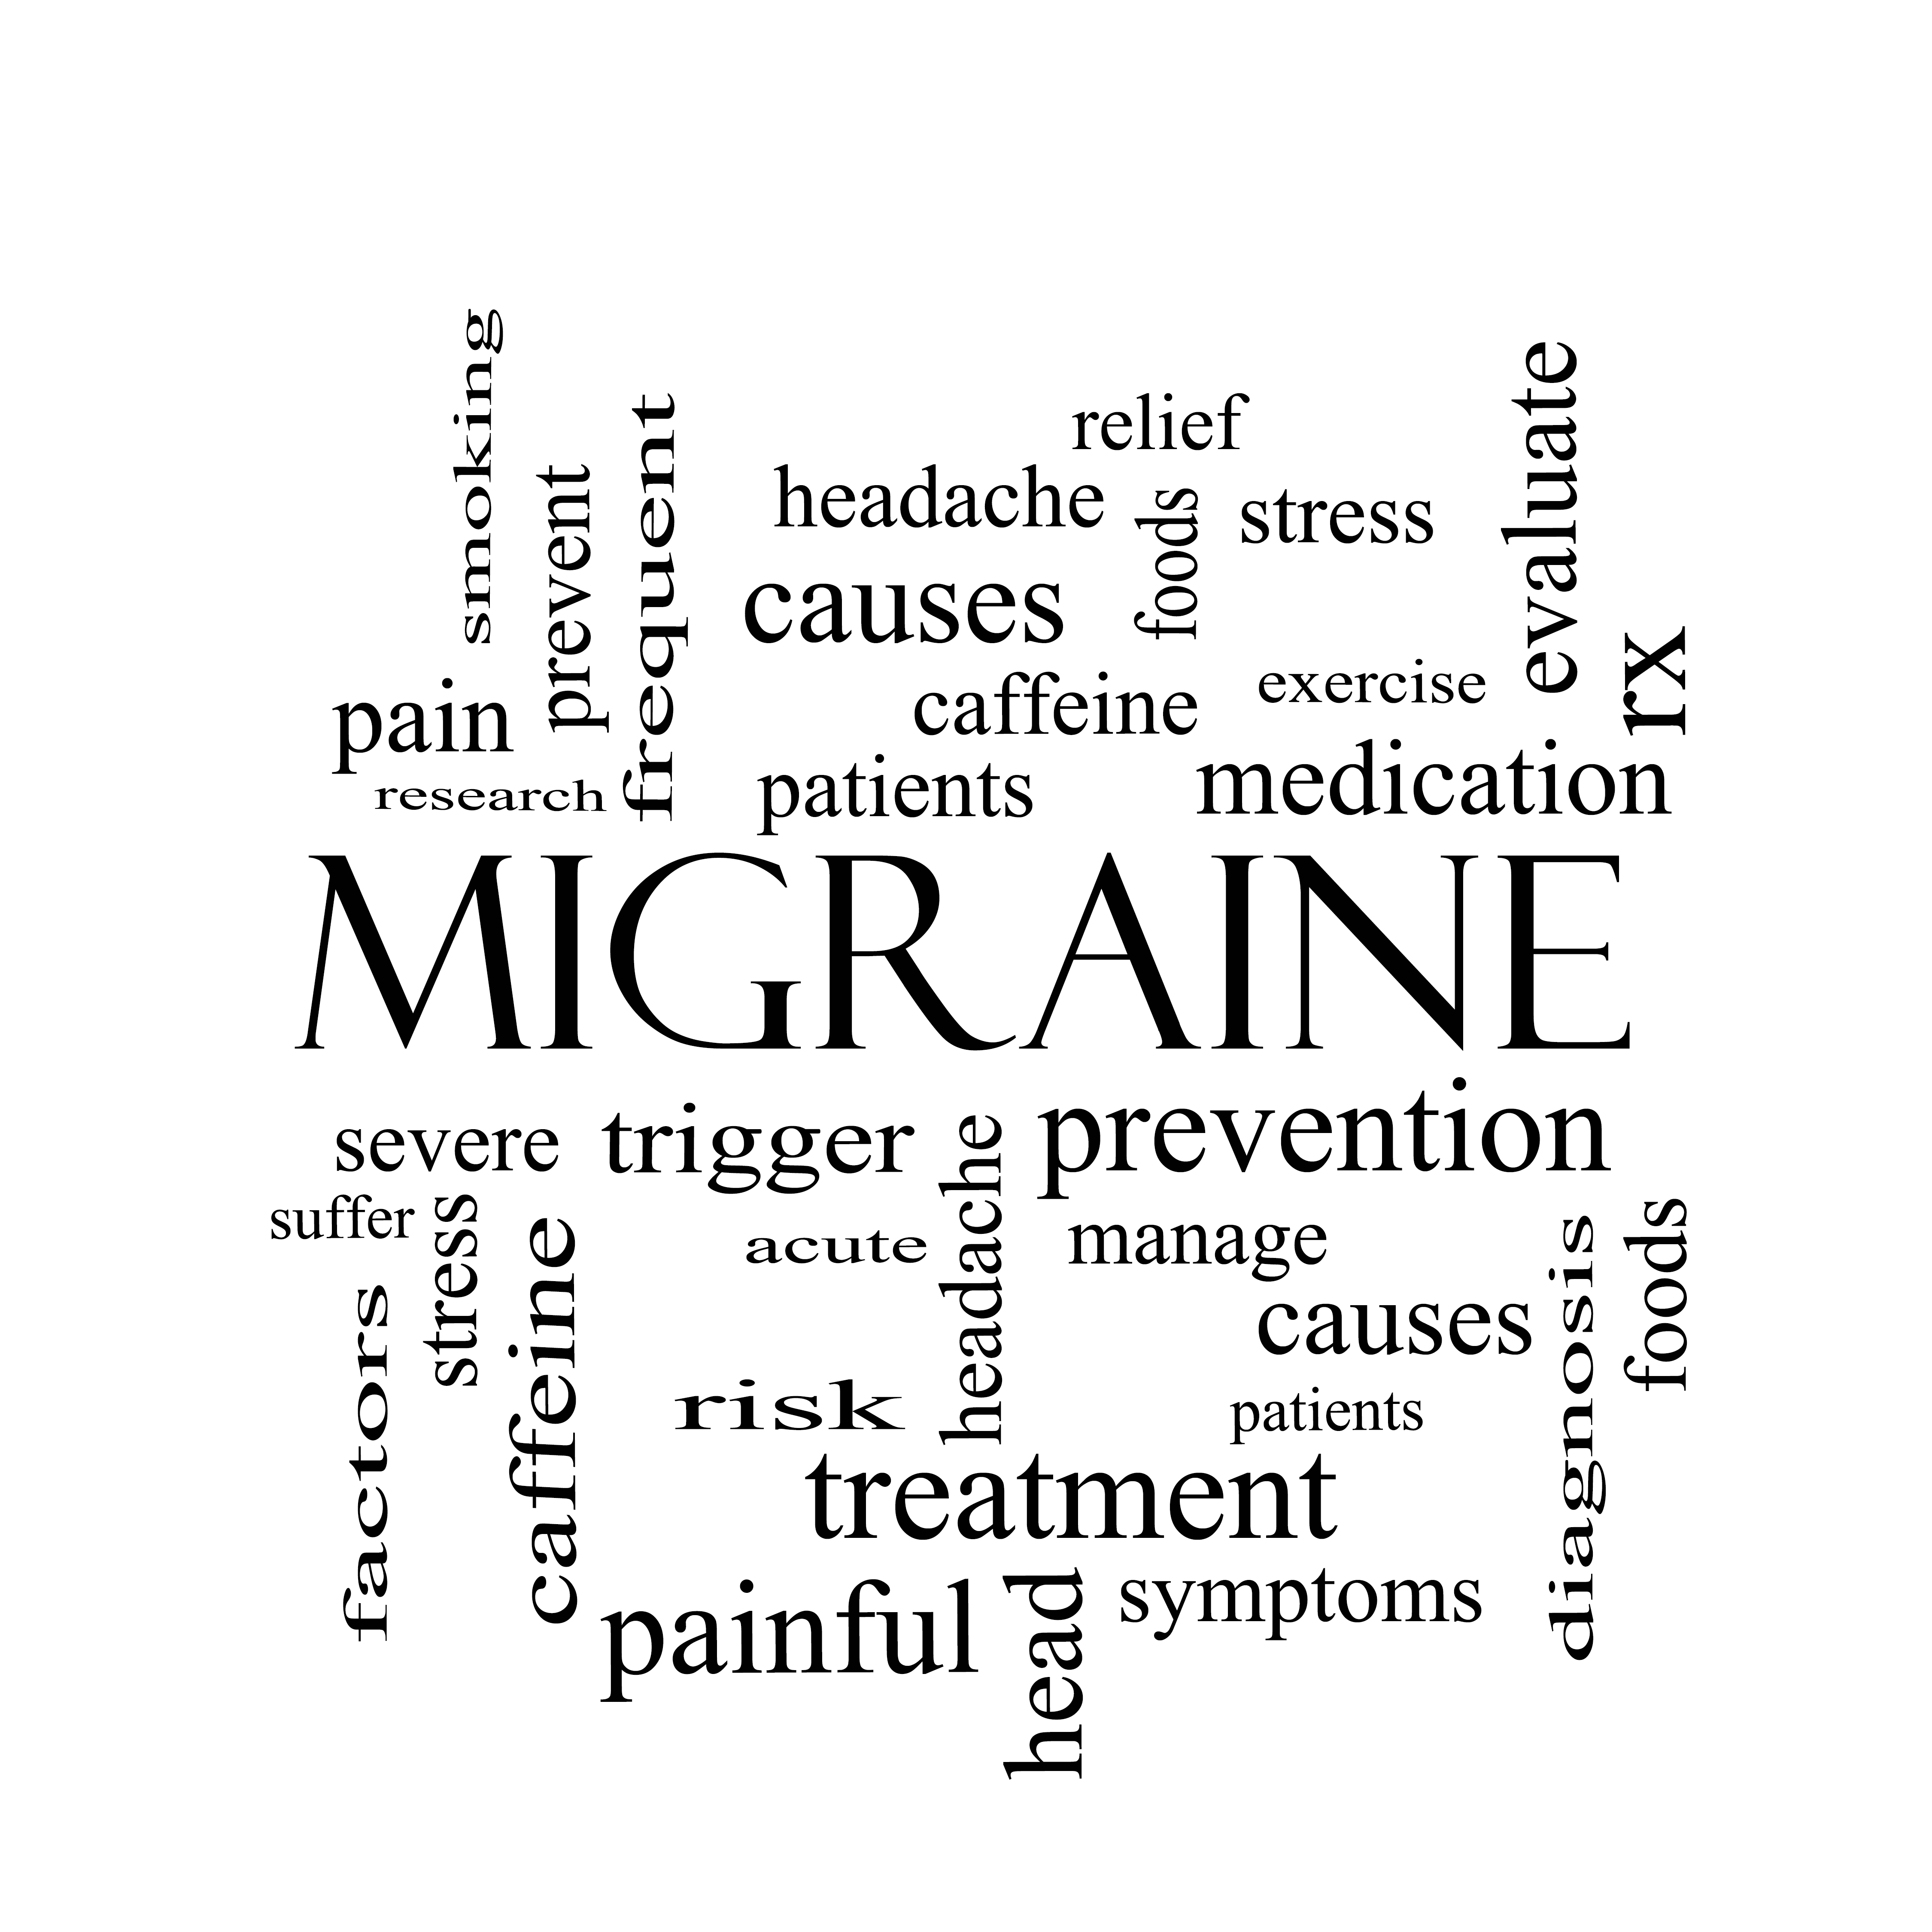 5 Ways To Ease Migraine Pain Fast